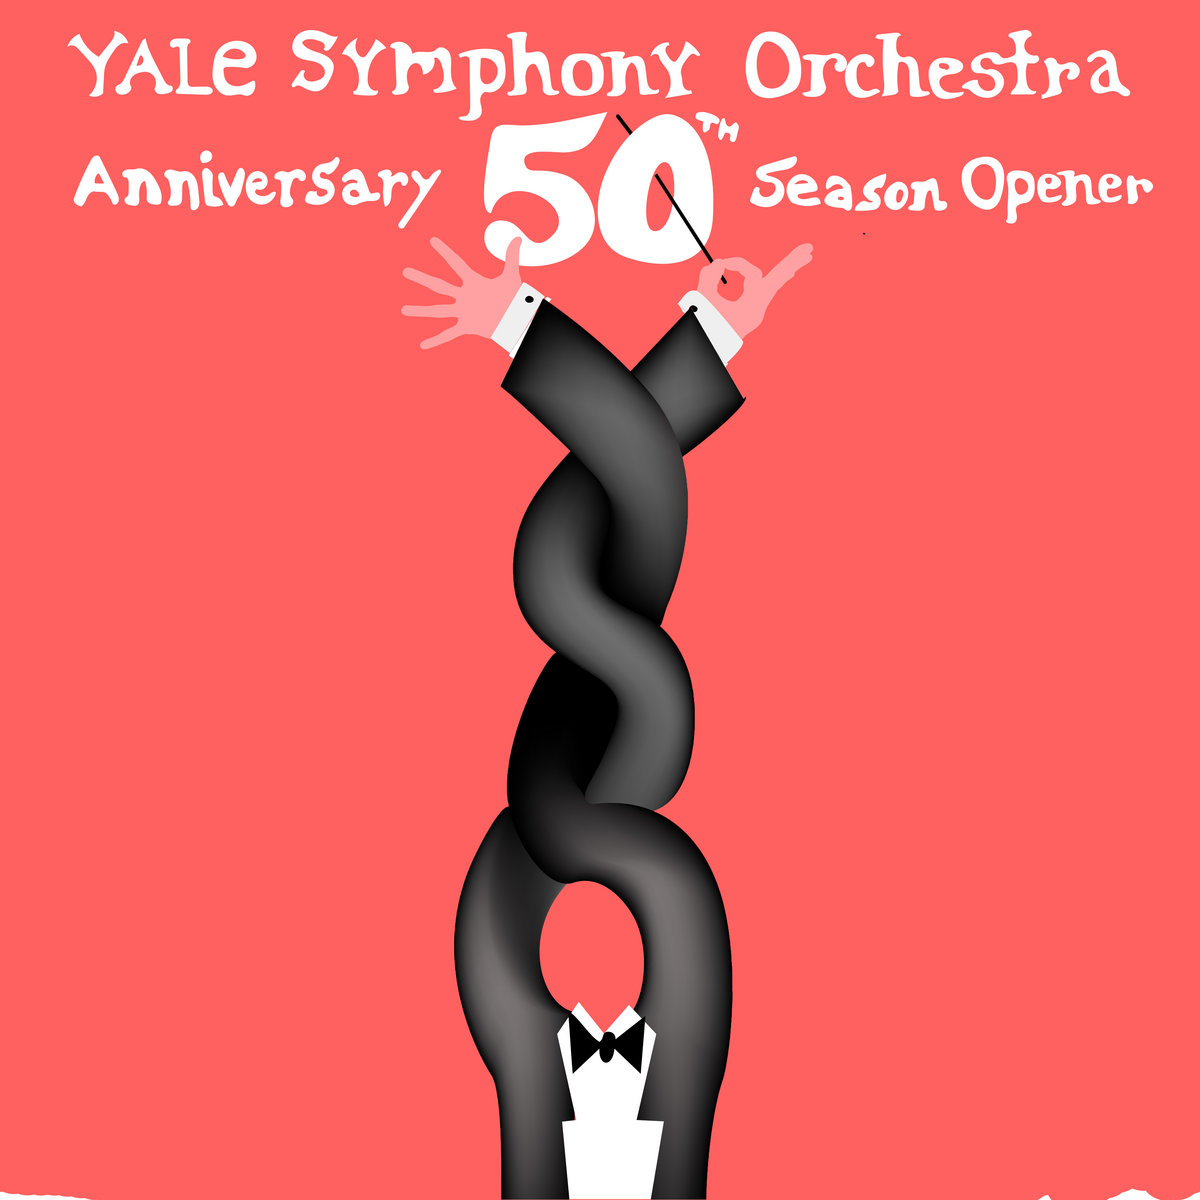 October 3, 2015 in Woolsey Hall   Yale Symphony Orchestra